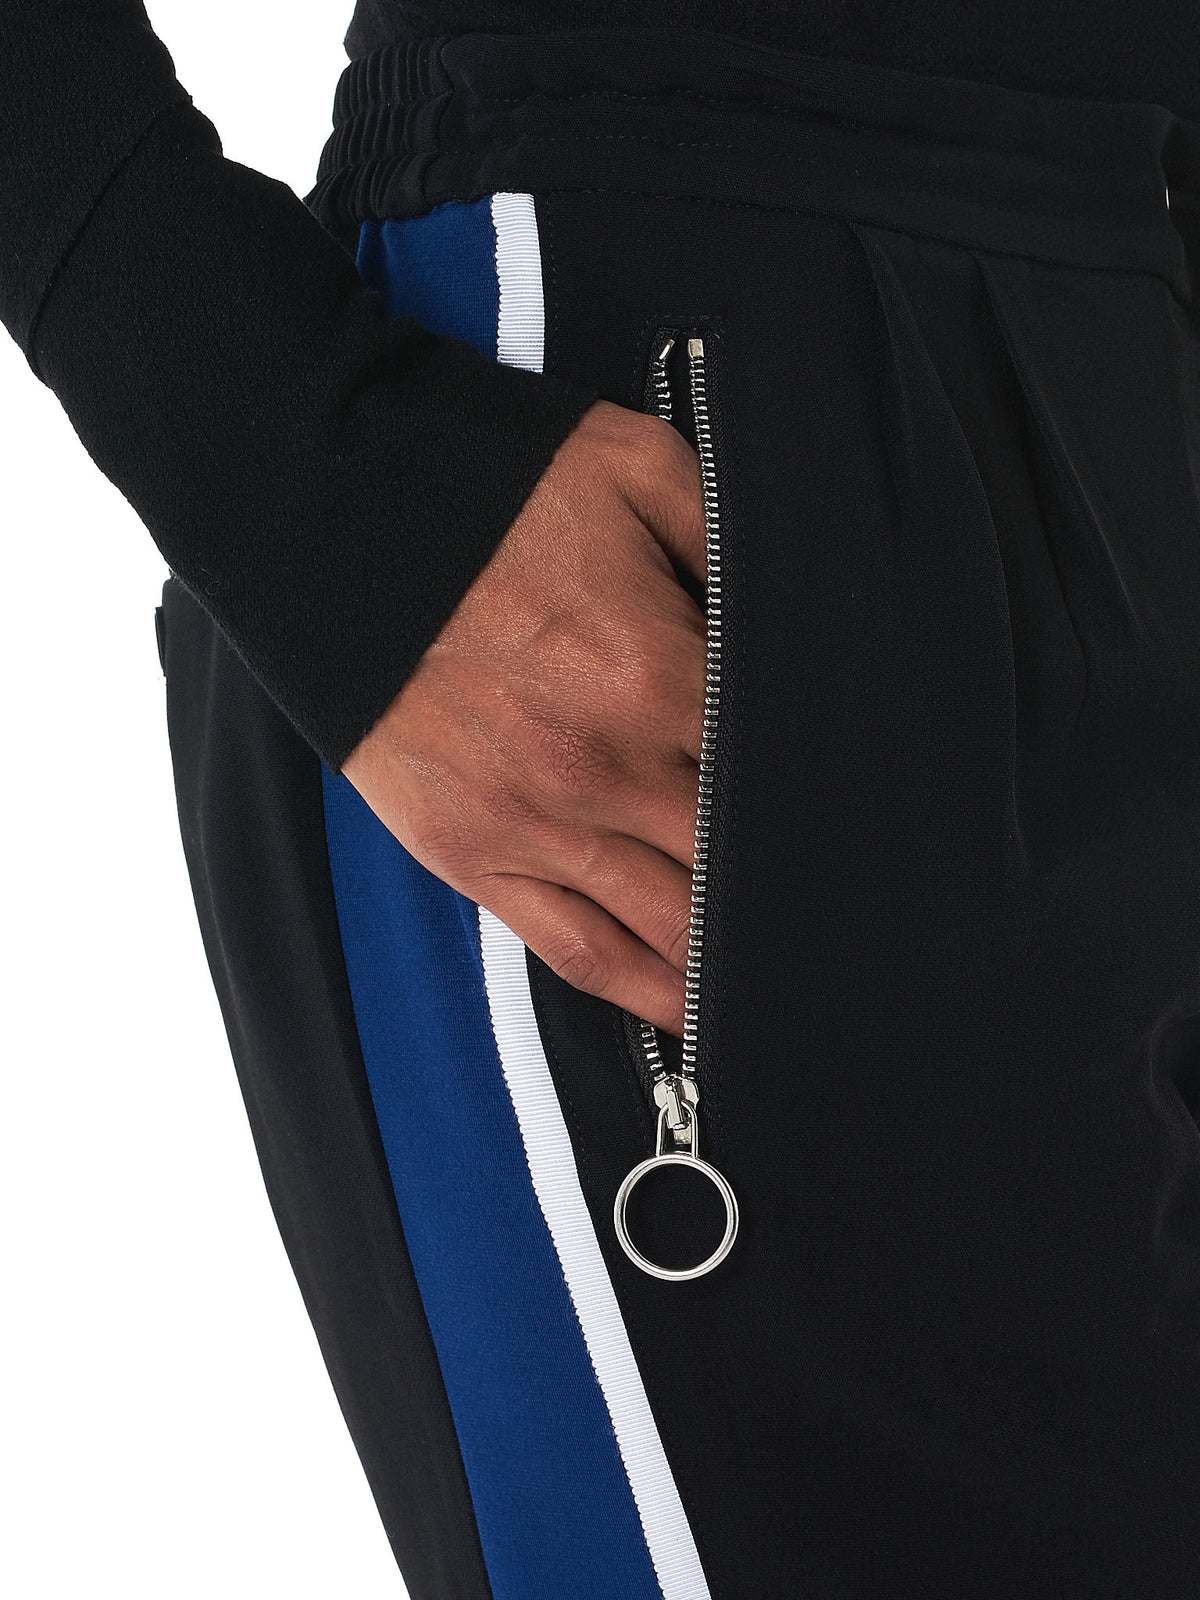 Tim Coppens- HLorenzo track pants detail